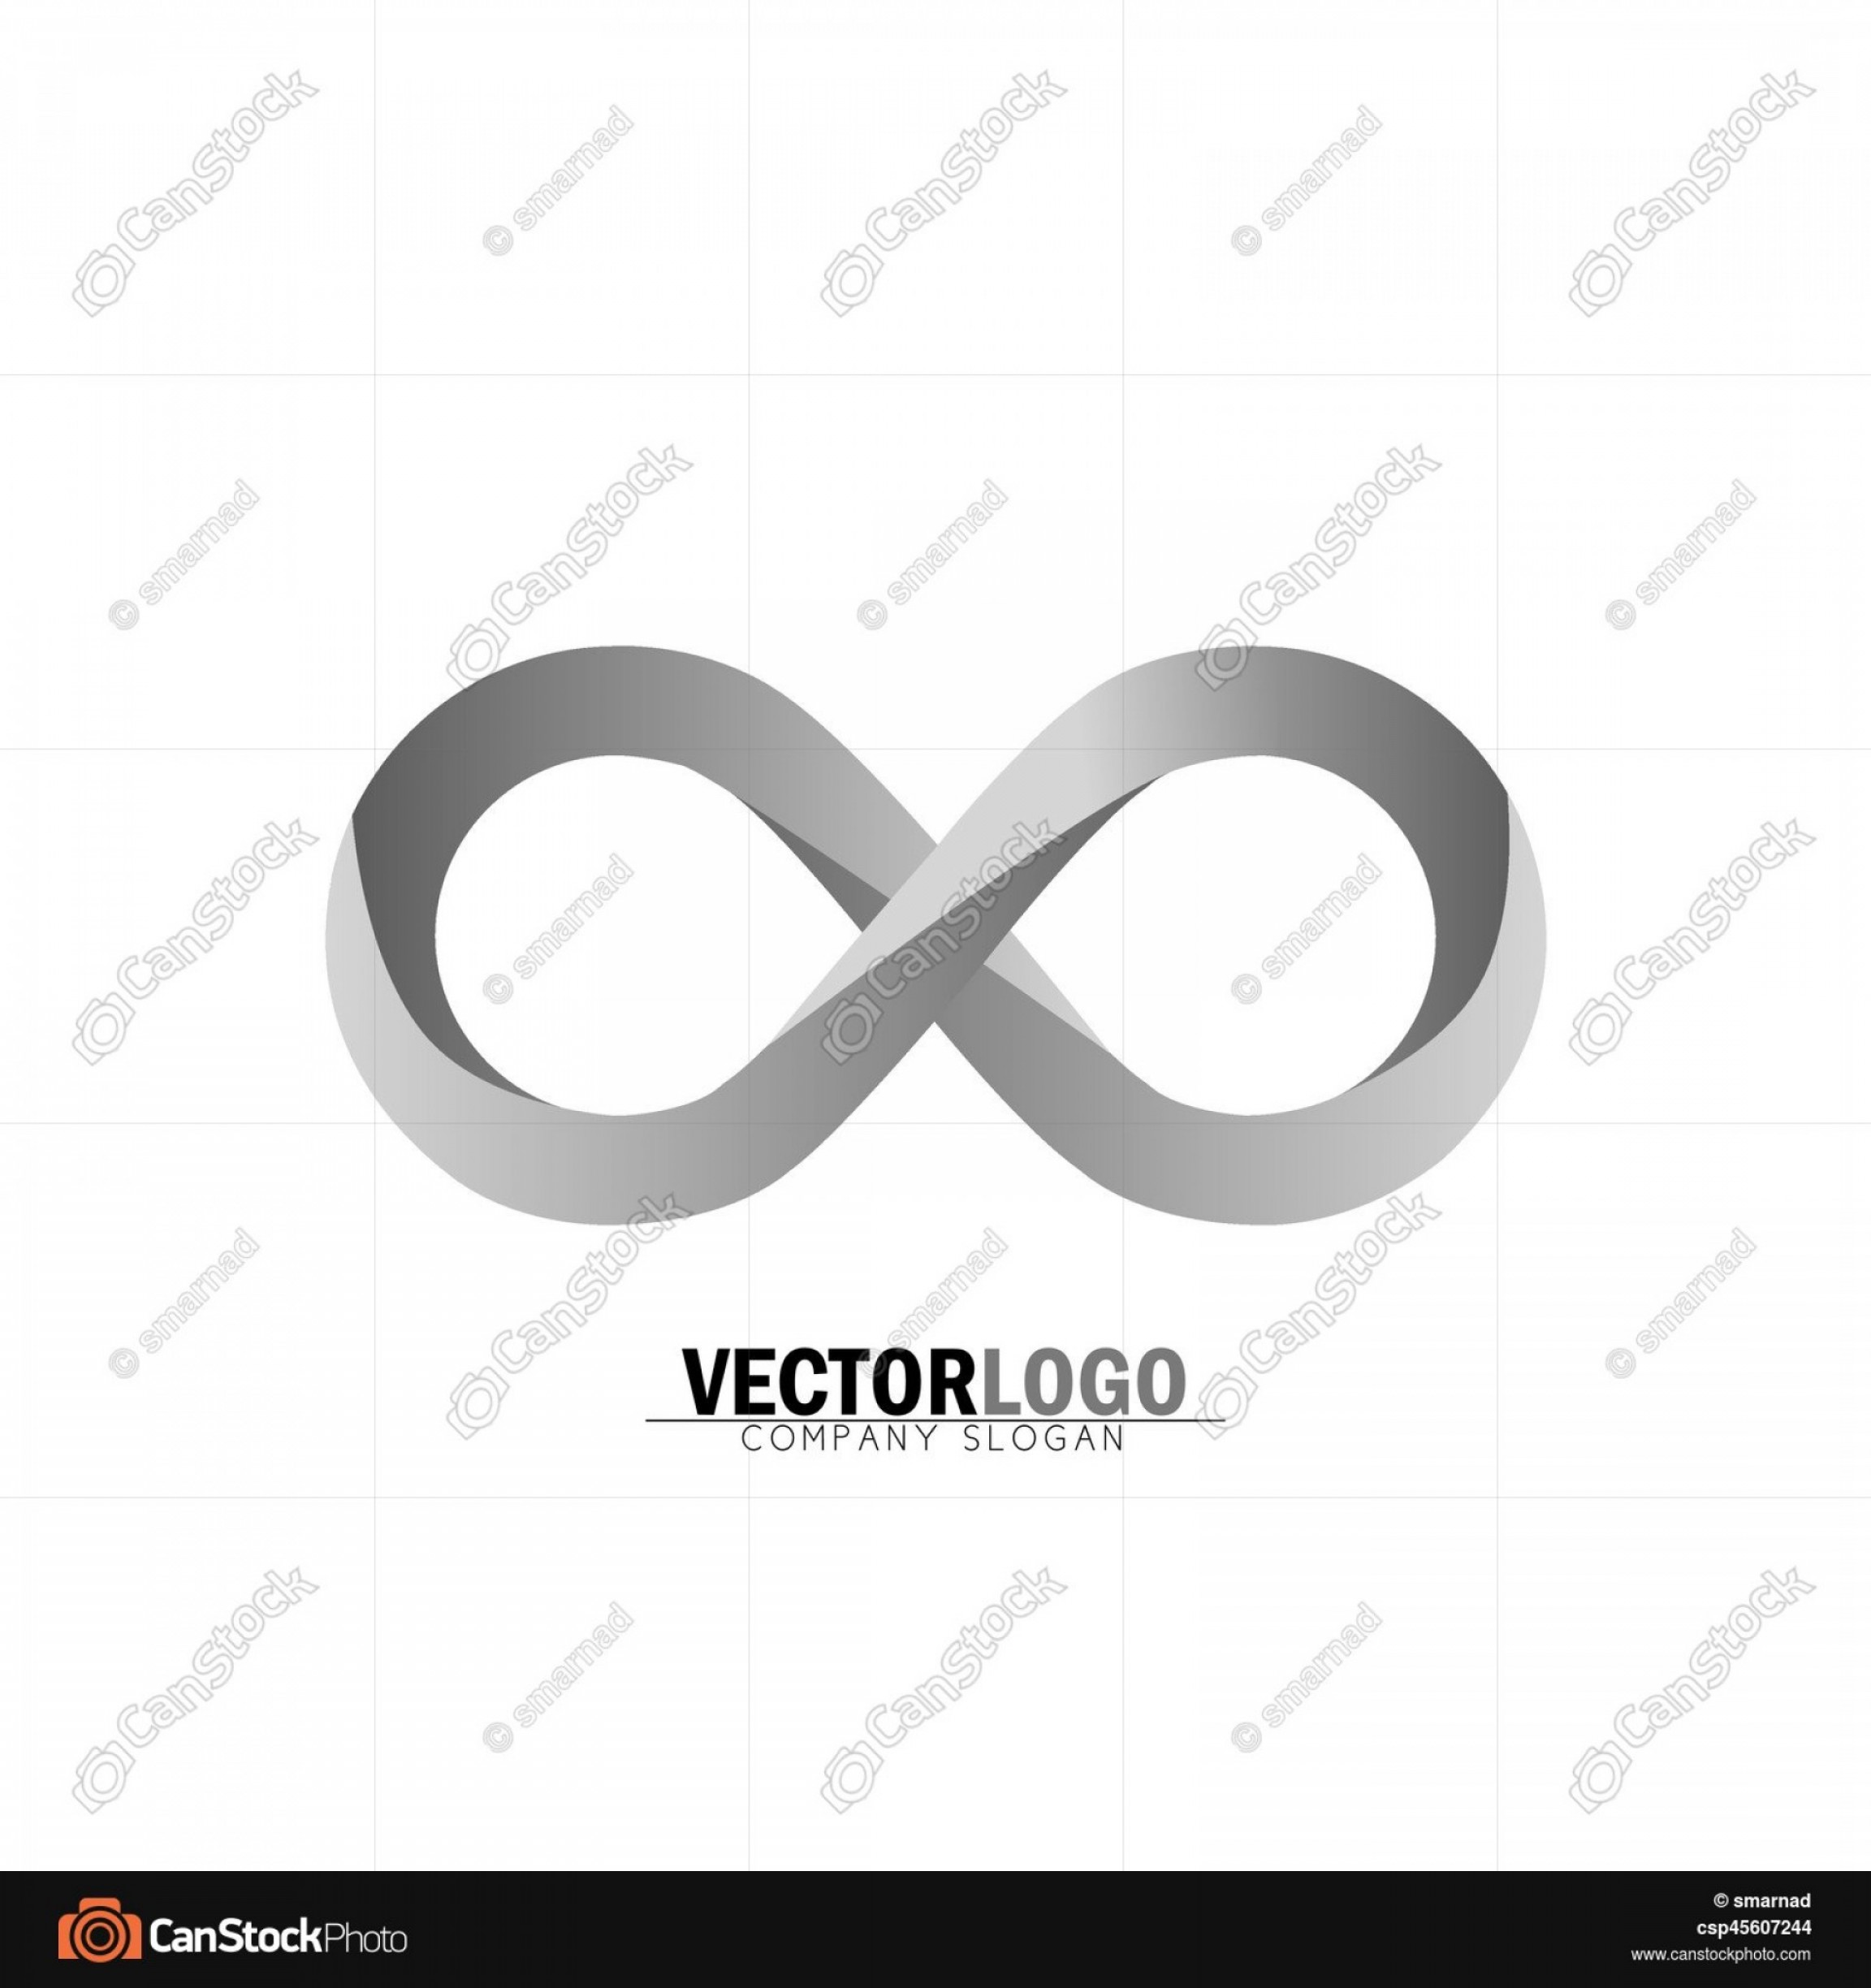 Love Infinity Symbol SVG Vector: Infinity Or Infinite Symbol In Grey